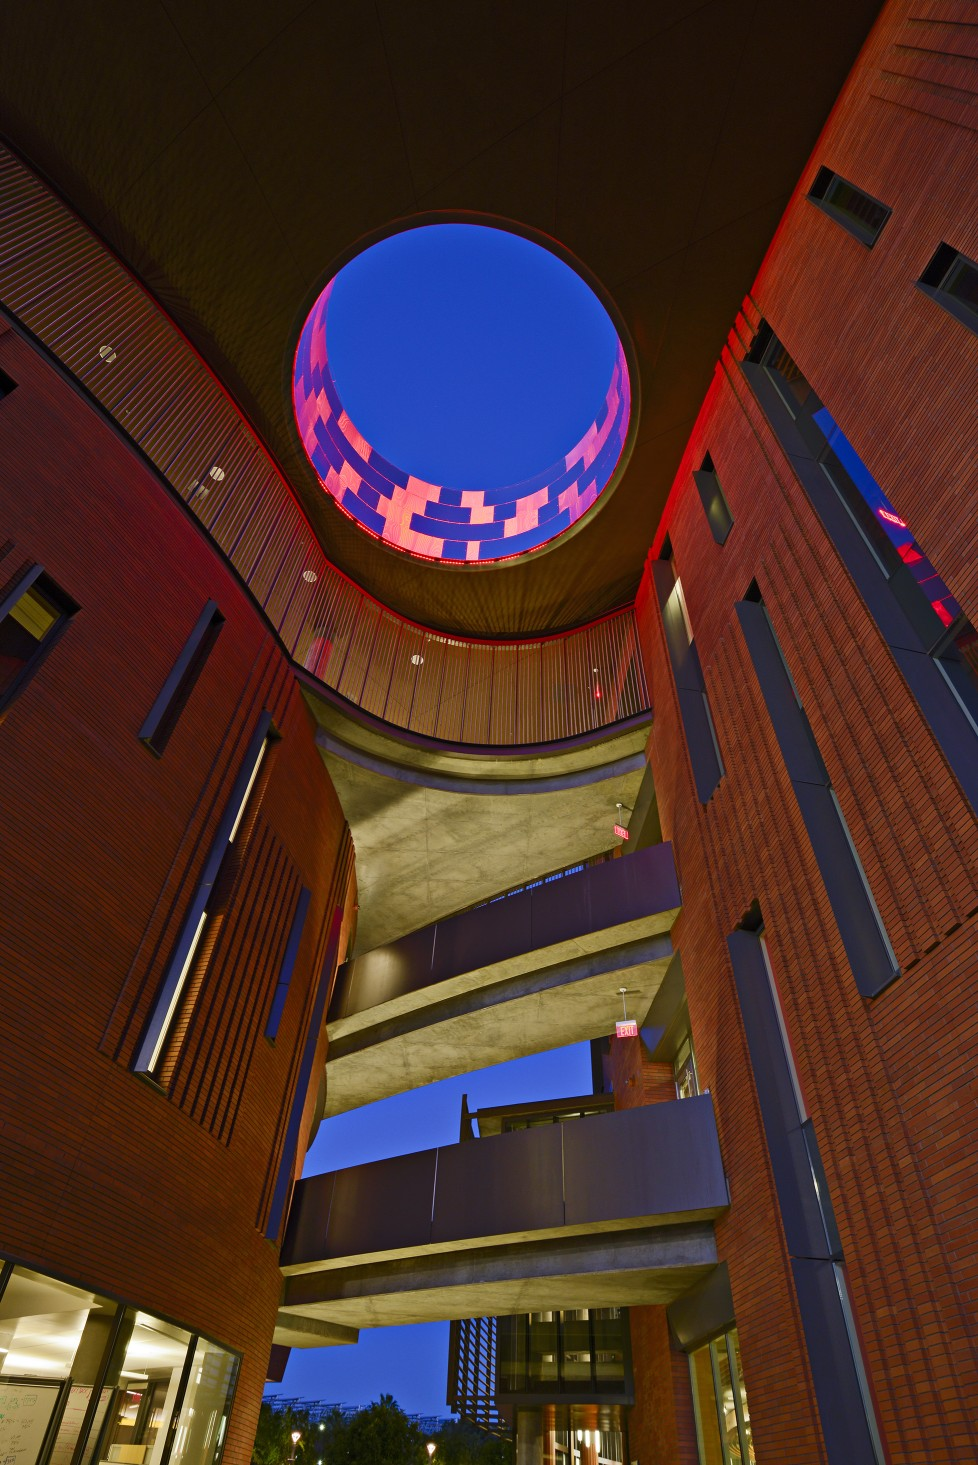 The lighting design links the building's two wings and accentuates its distinct layout.